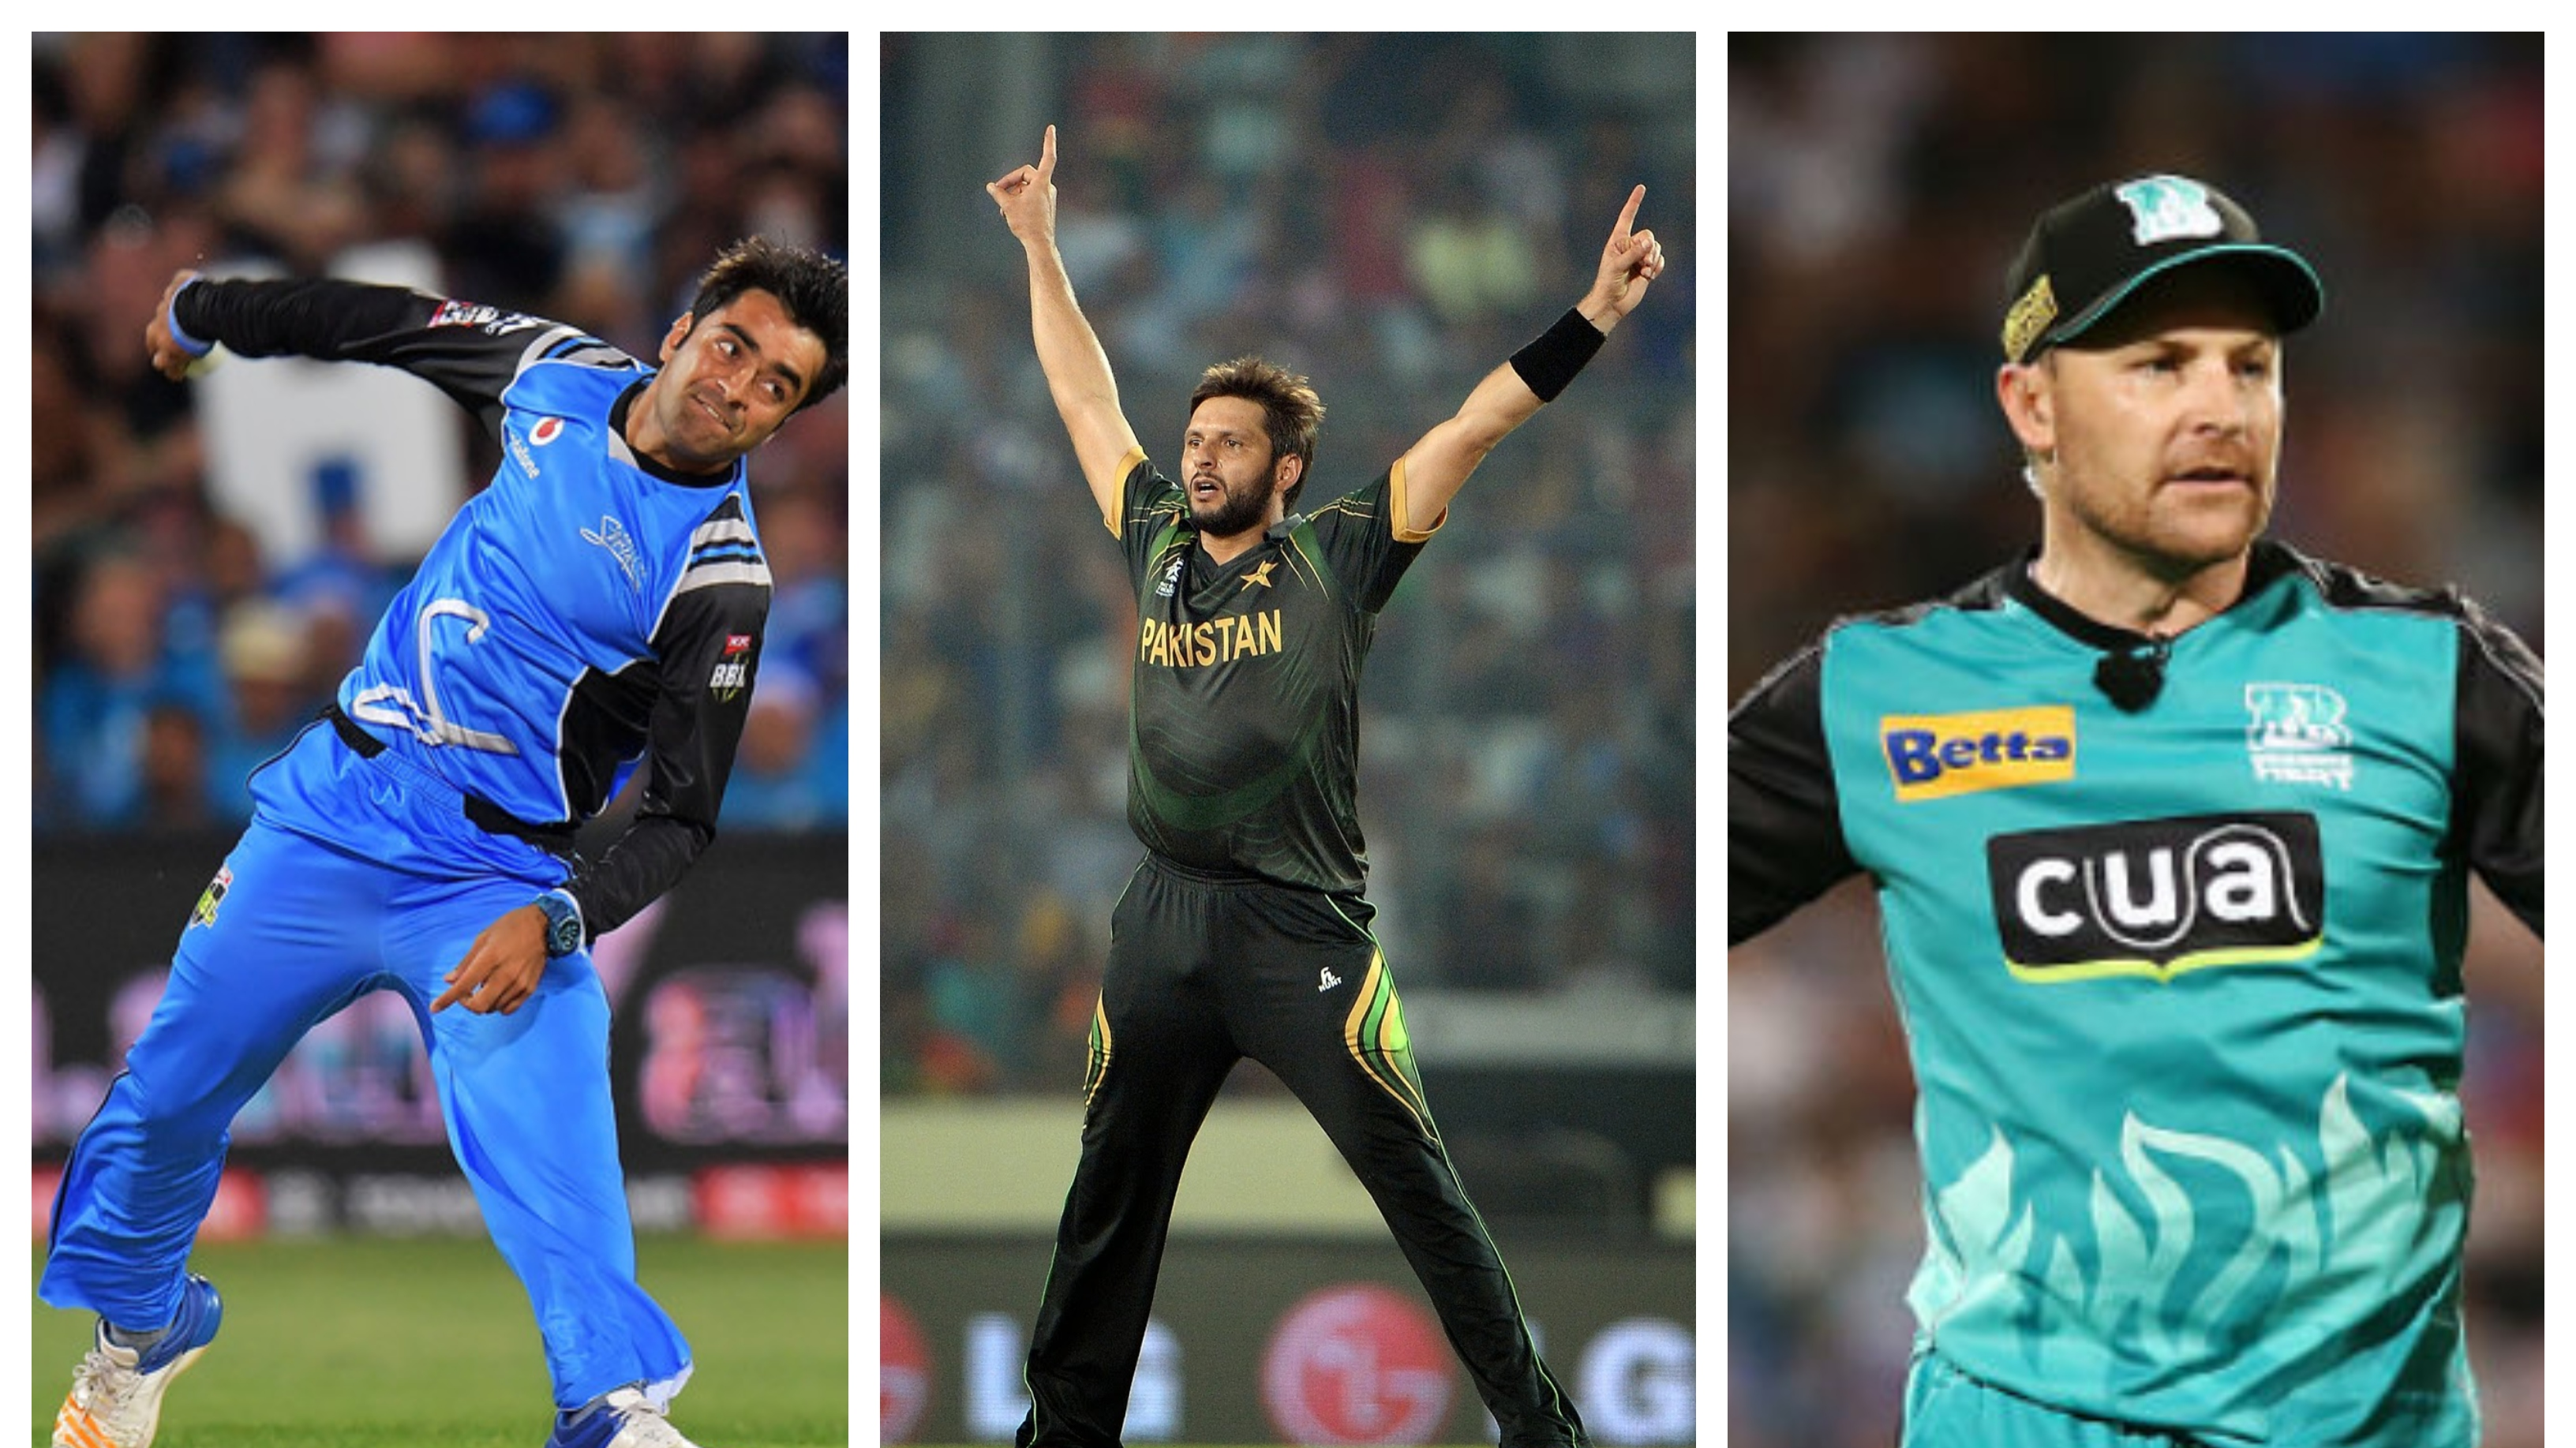 Rashid, Afridi, McCullum delighted to be in ESPNCricinfo's All-time T20 XI